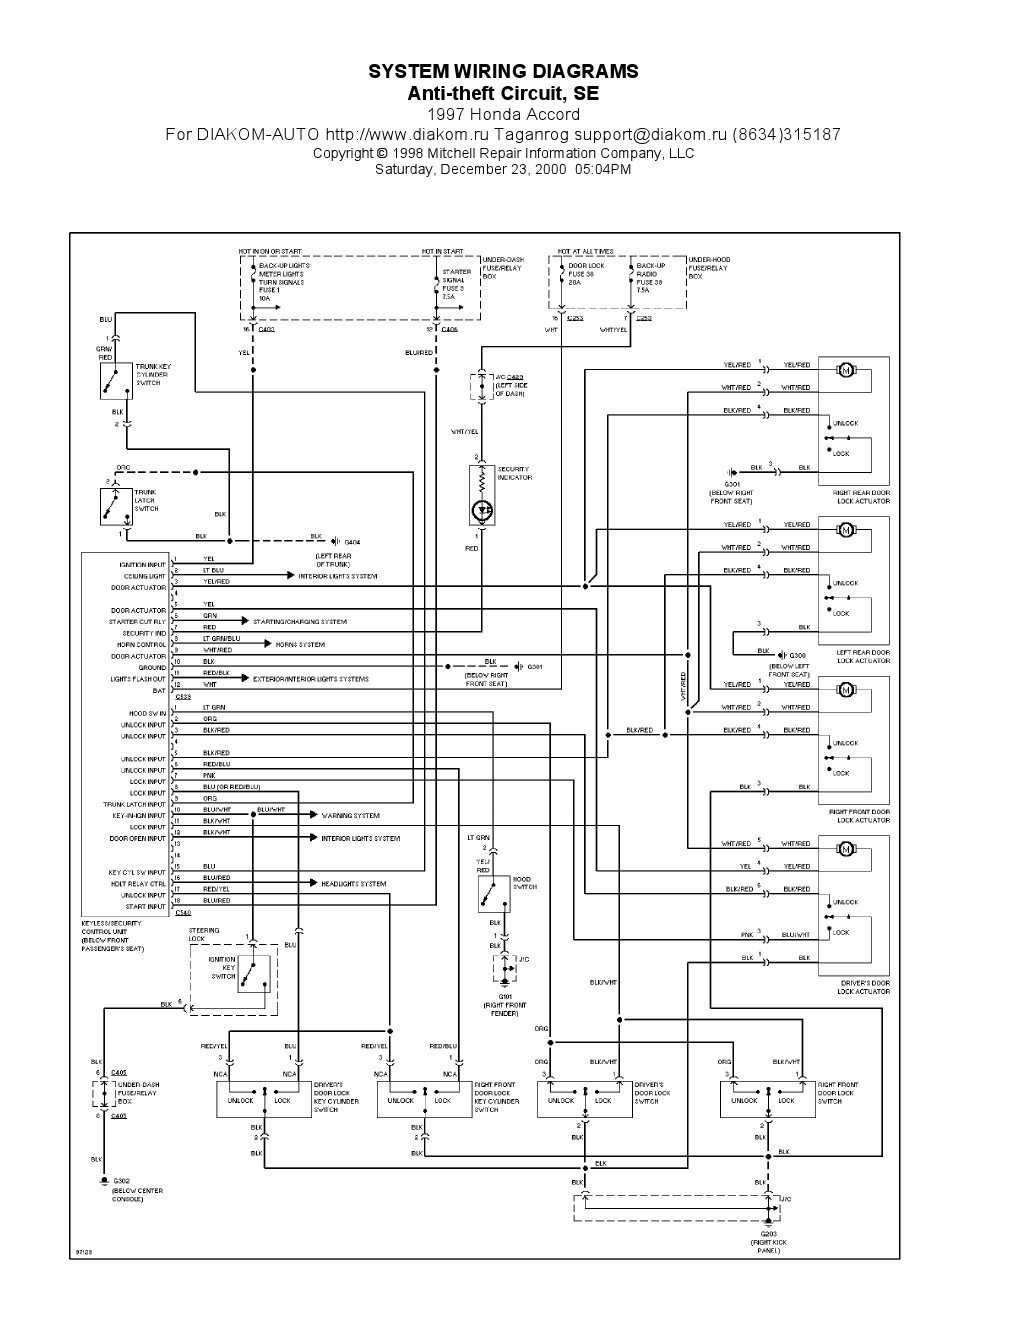 1994 honda accord horn wiring diagram wiring diagrams ac disconnect box wiring diagram 1994 honda accord [ 1020 x 1320 Pixel ]